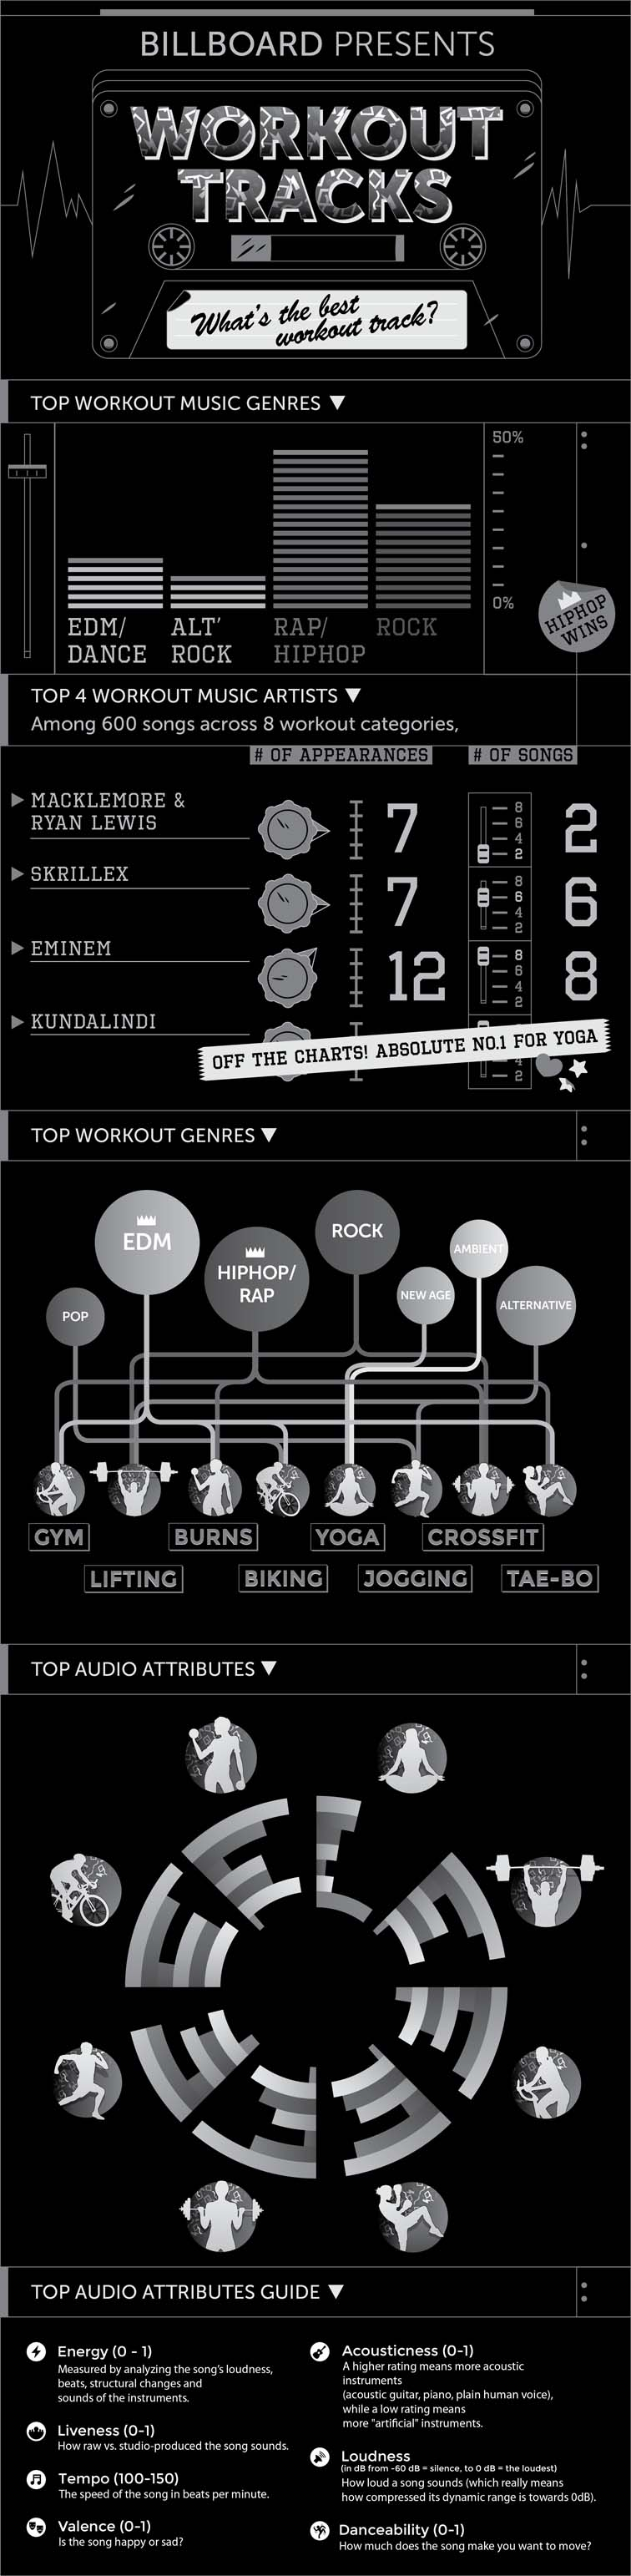 Exercise Playlist Infographic 5663